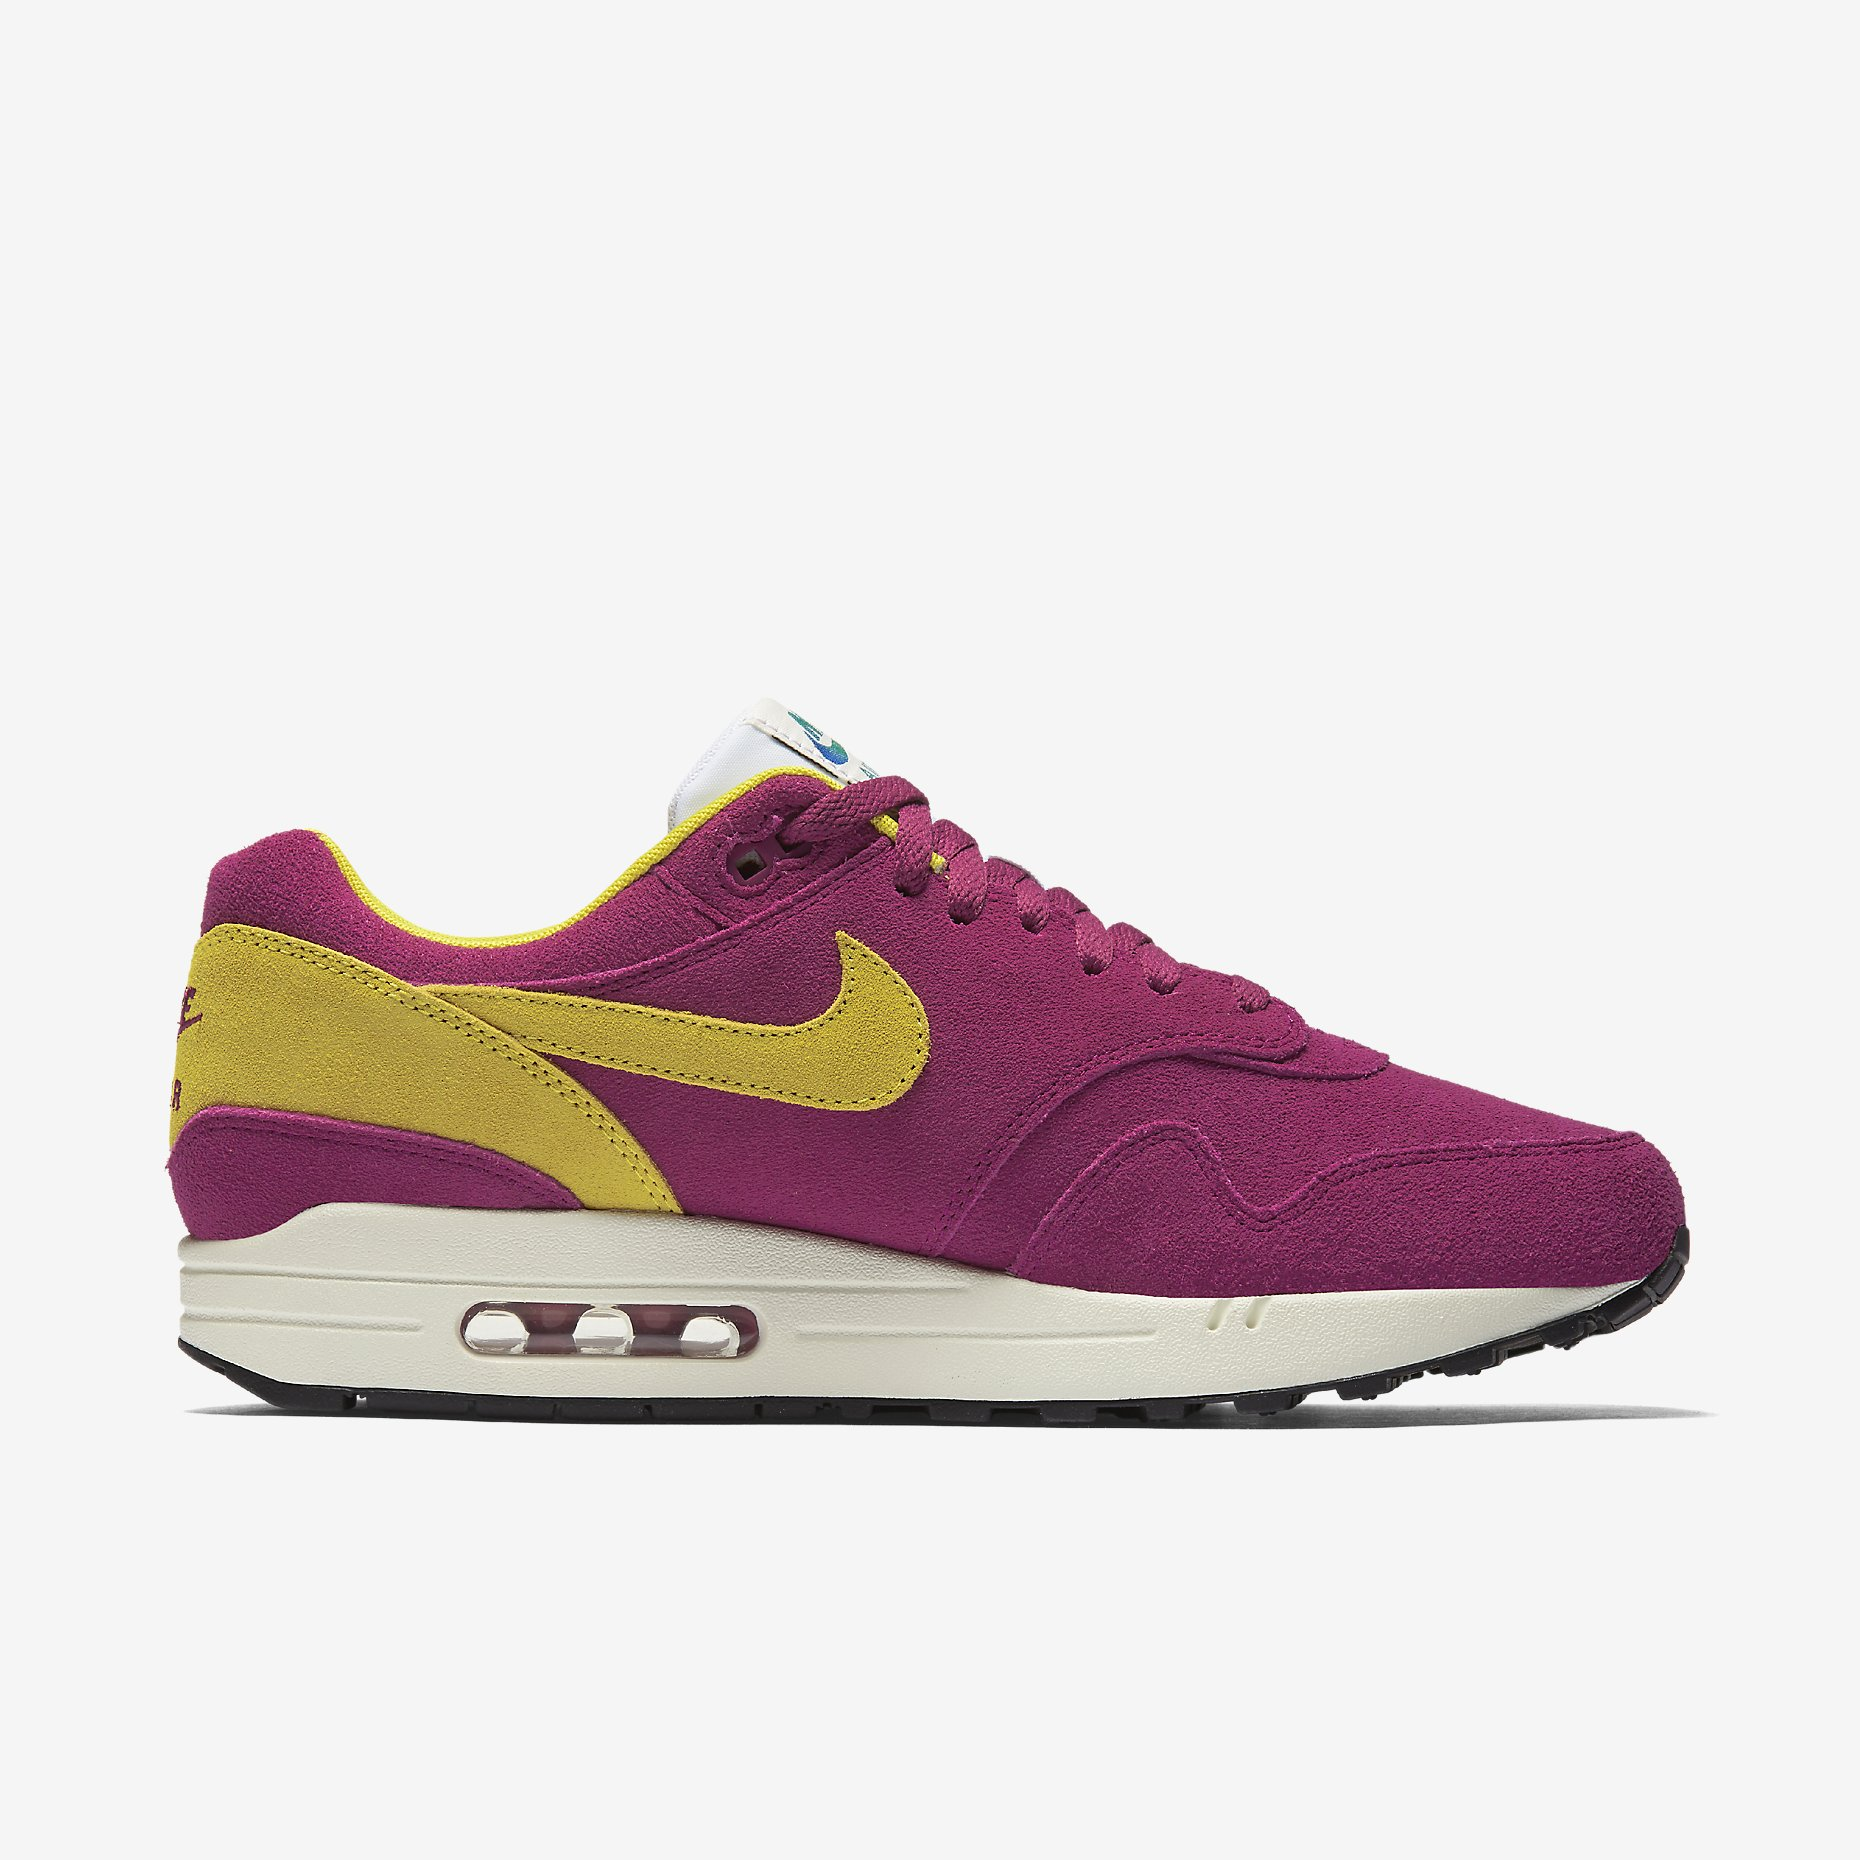 Nike Air Max 1 Dynamic Berry 875844 500 4